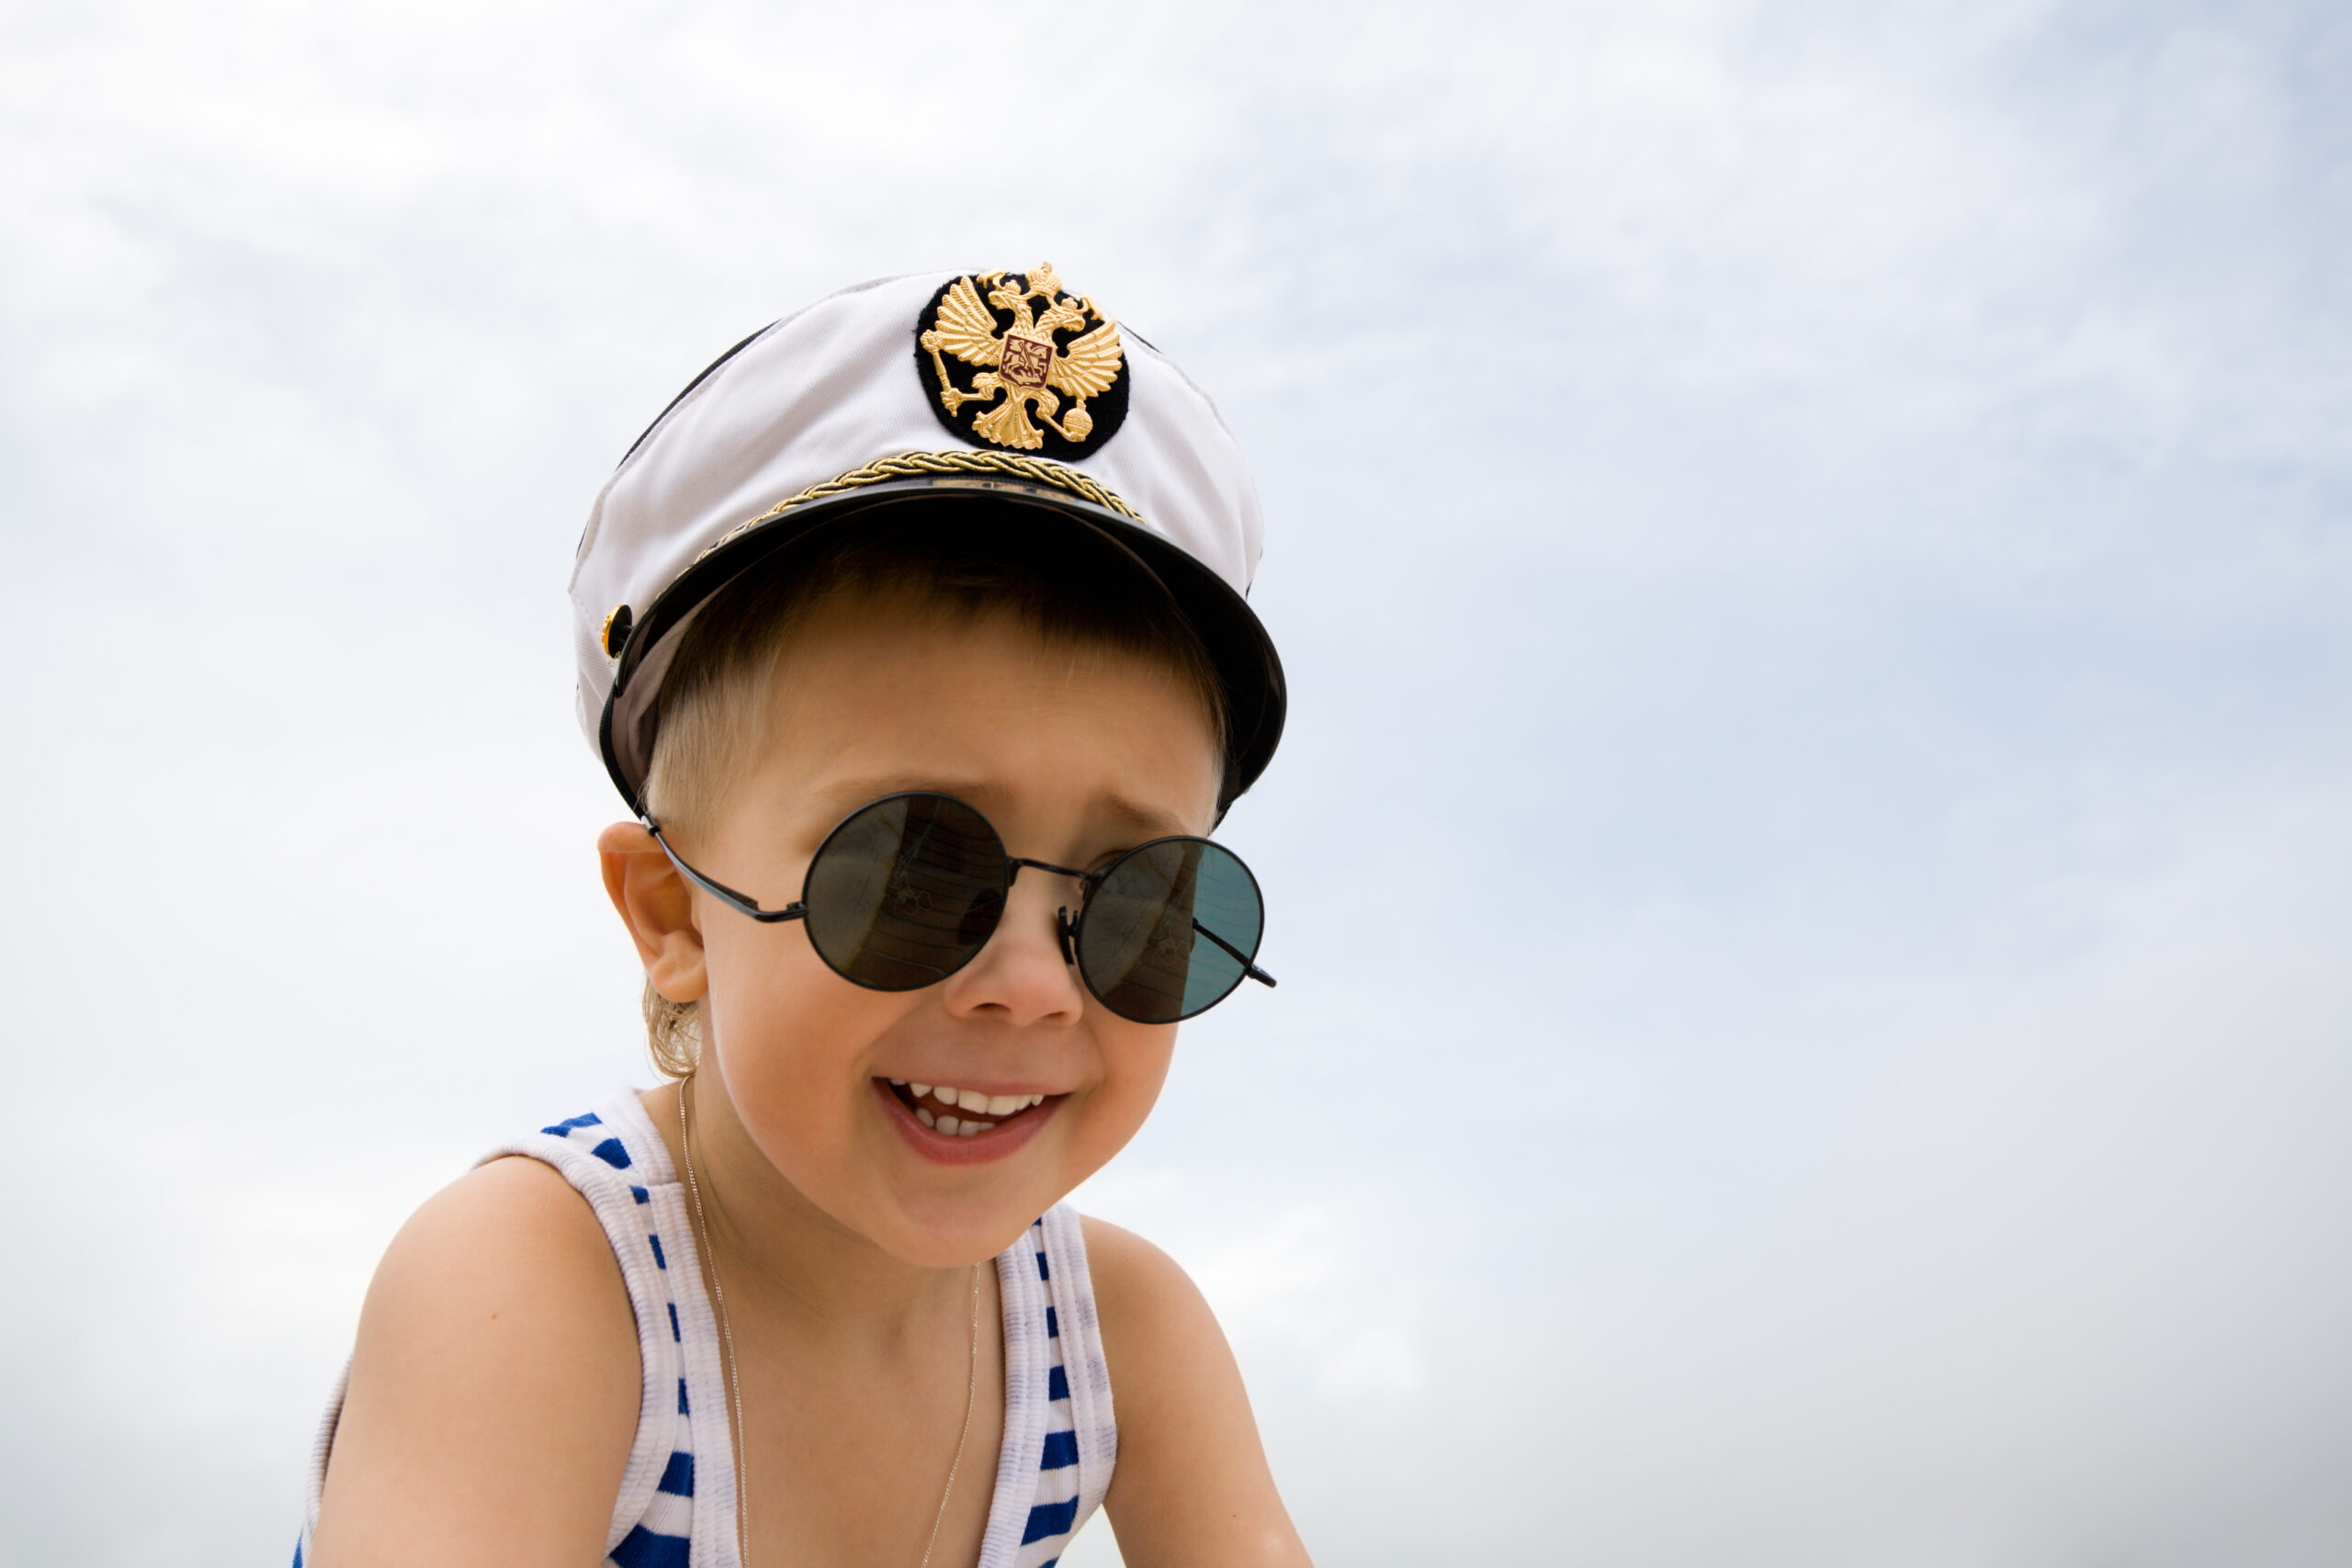 Ship's boy.On a service cap the arms of Russia